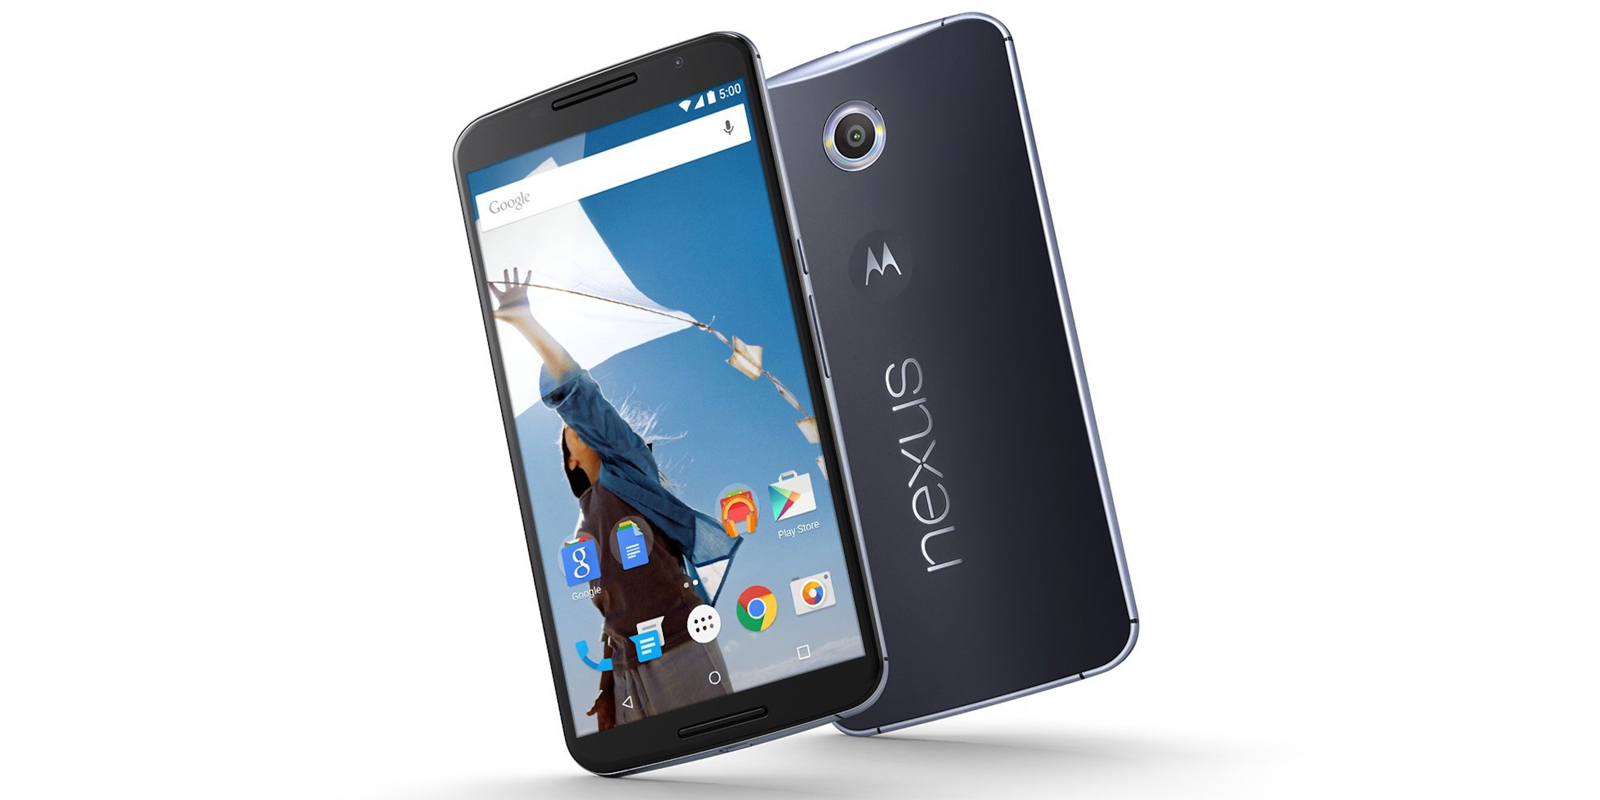 motorola-nexus-6-unlocked-32gb-in-midnight-blue